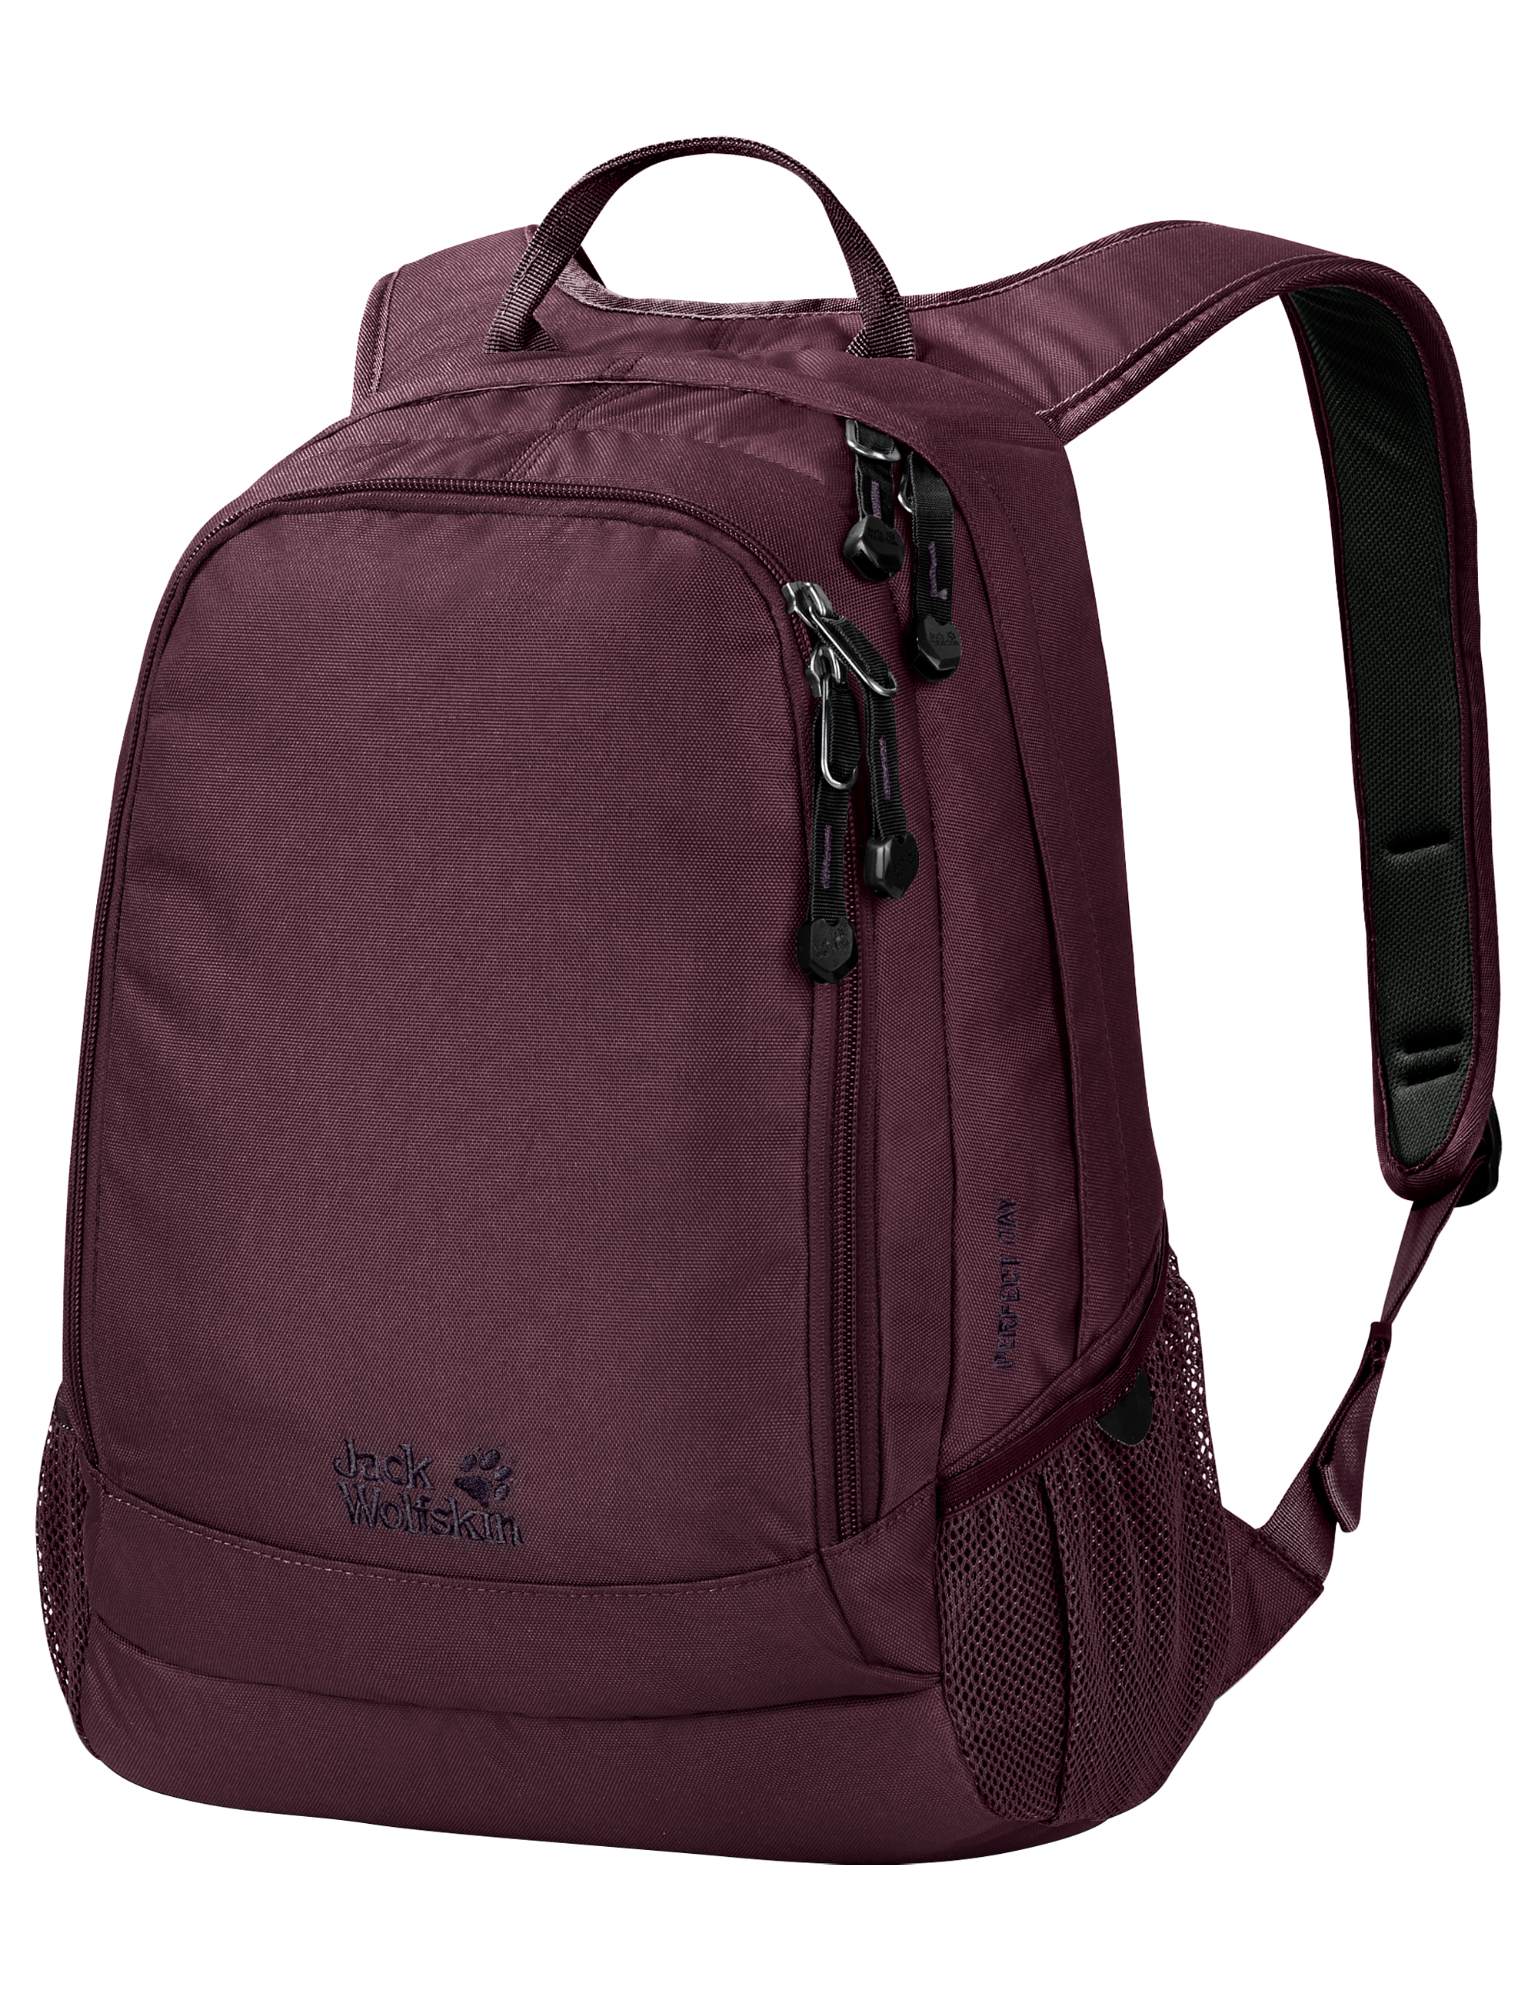 Jack Wolfskin Perfect Day 22 - Rygsæk Unisex - Bordeaux | Travel bags